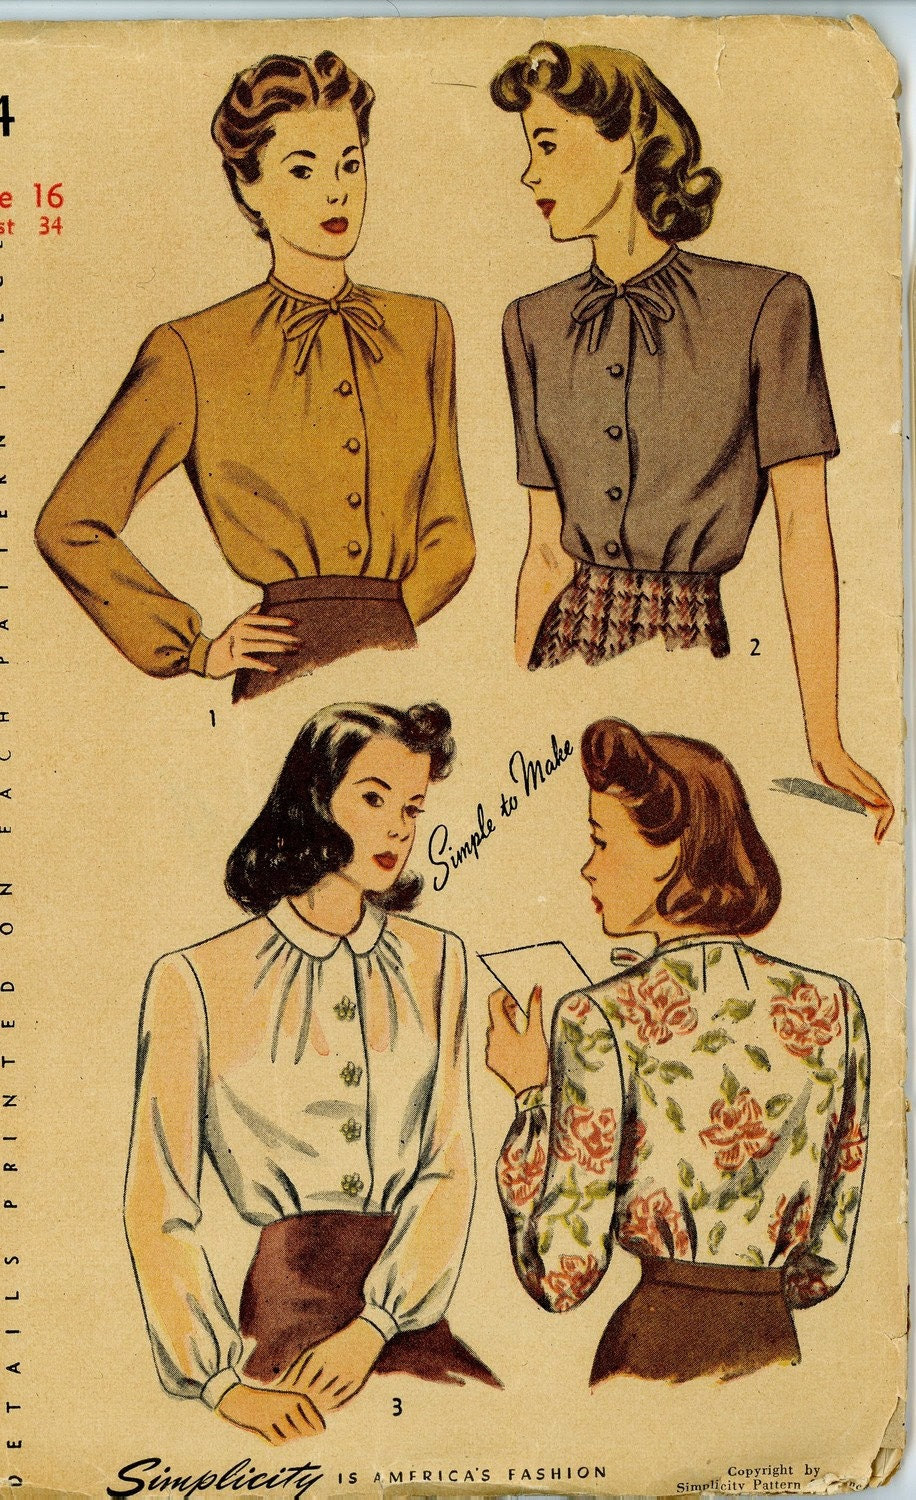 Vintage 1940s Simplicity 4814 Sewing Pattern for Misses Blouse Set, size 32 bust